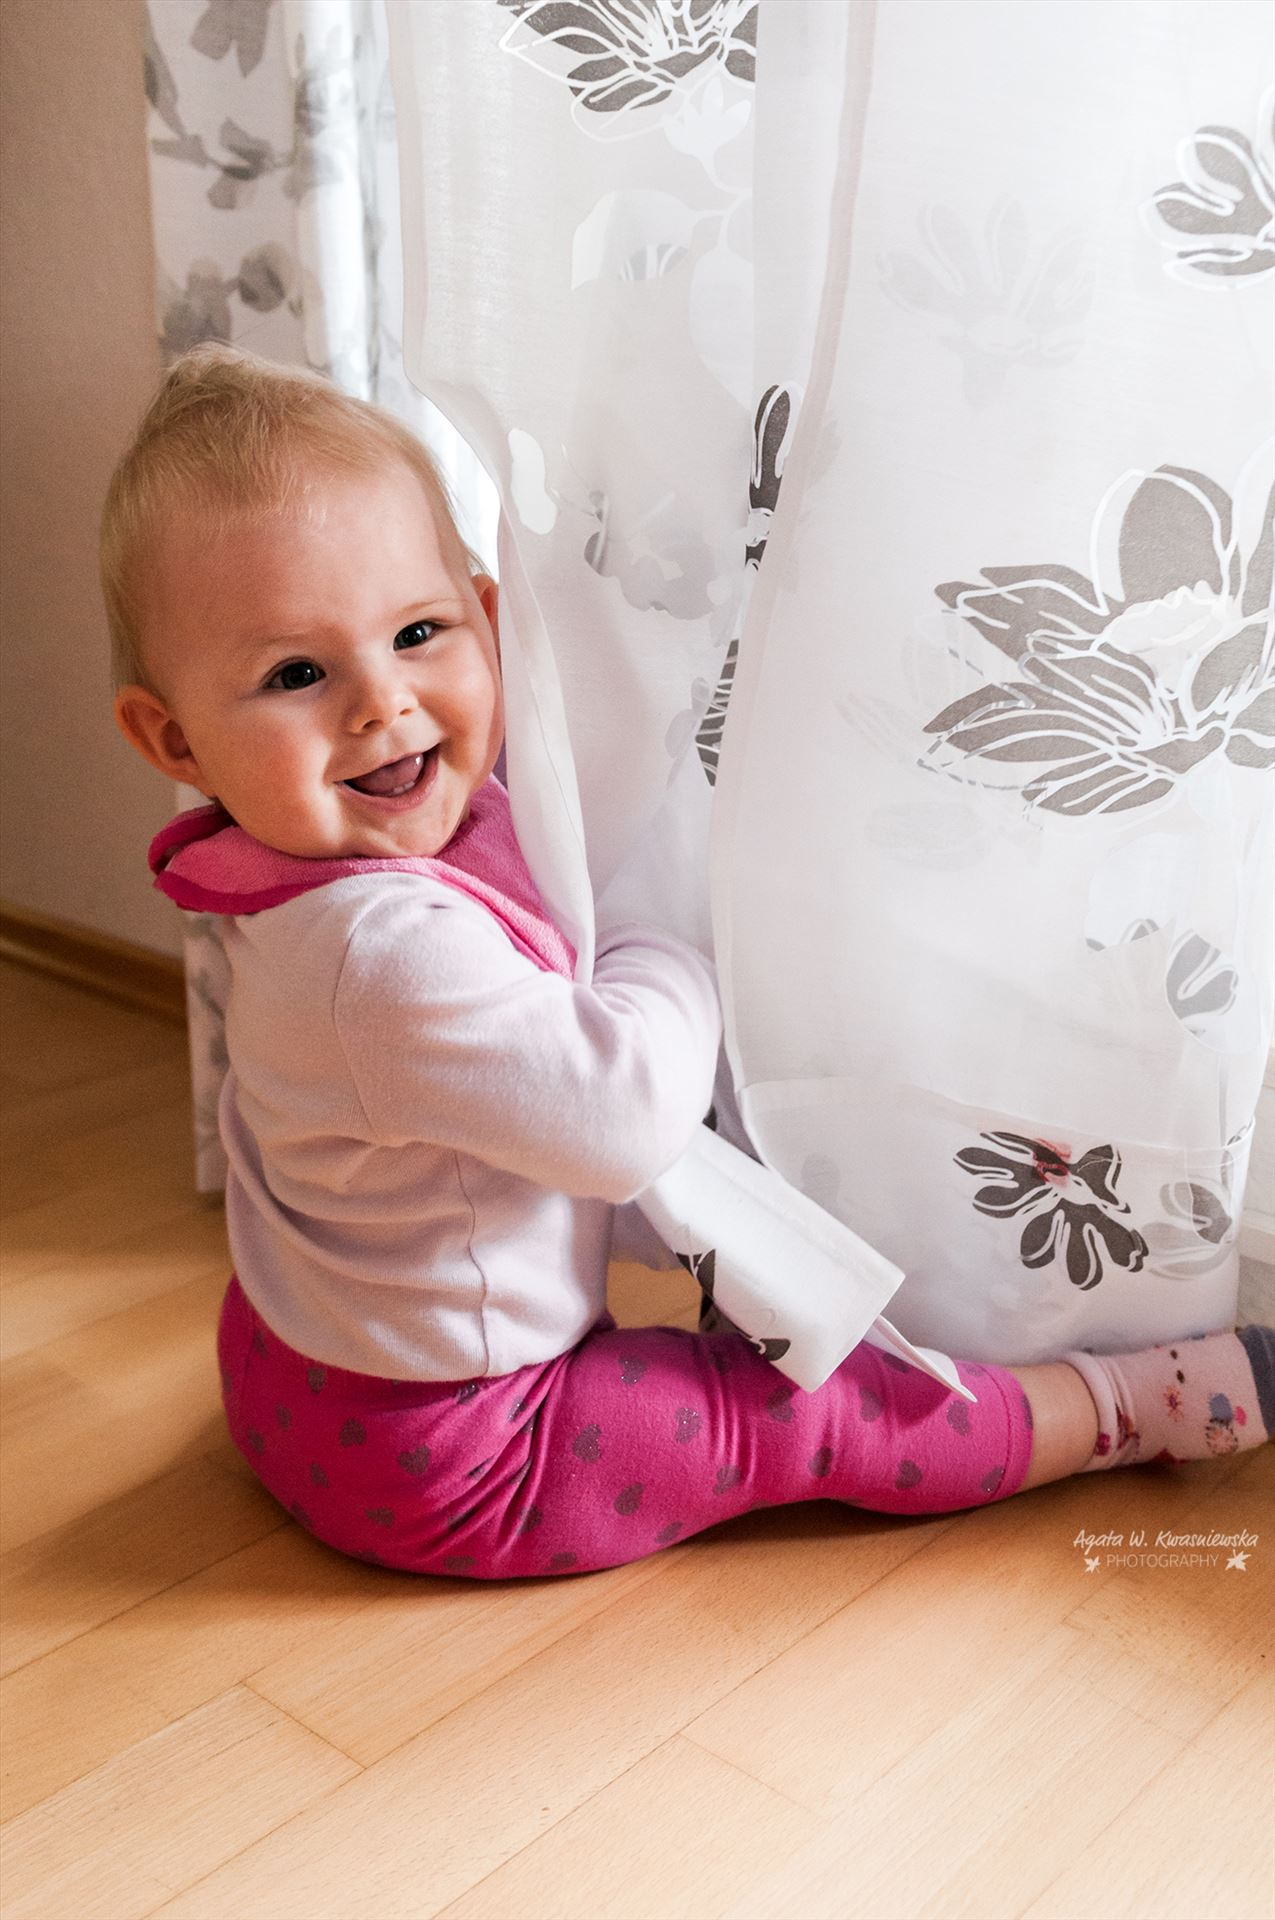 09 -  by Agata W. Kwasniewska Photography